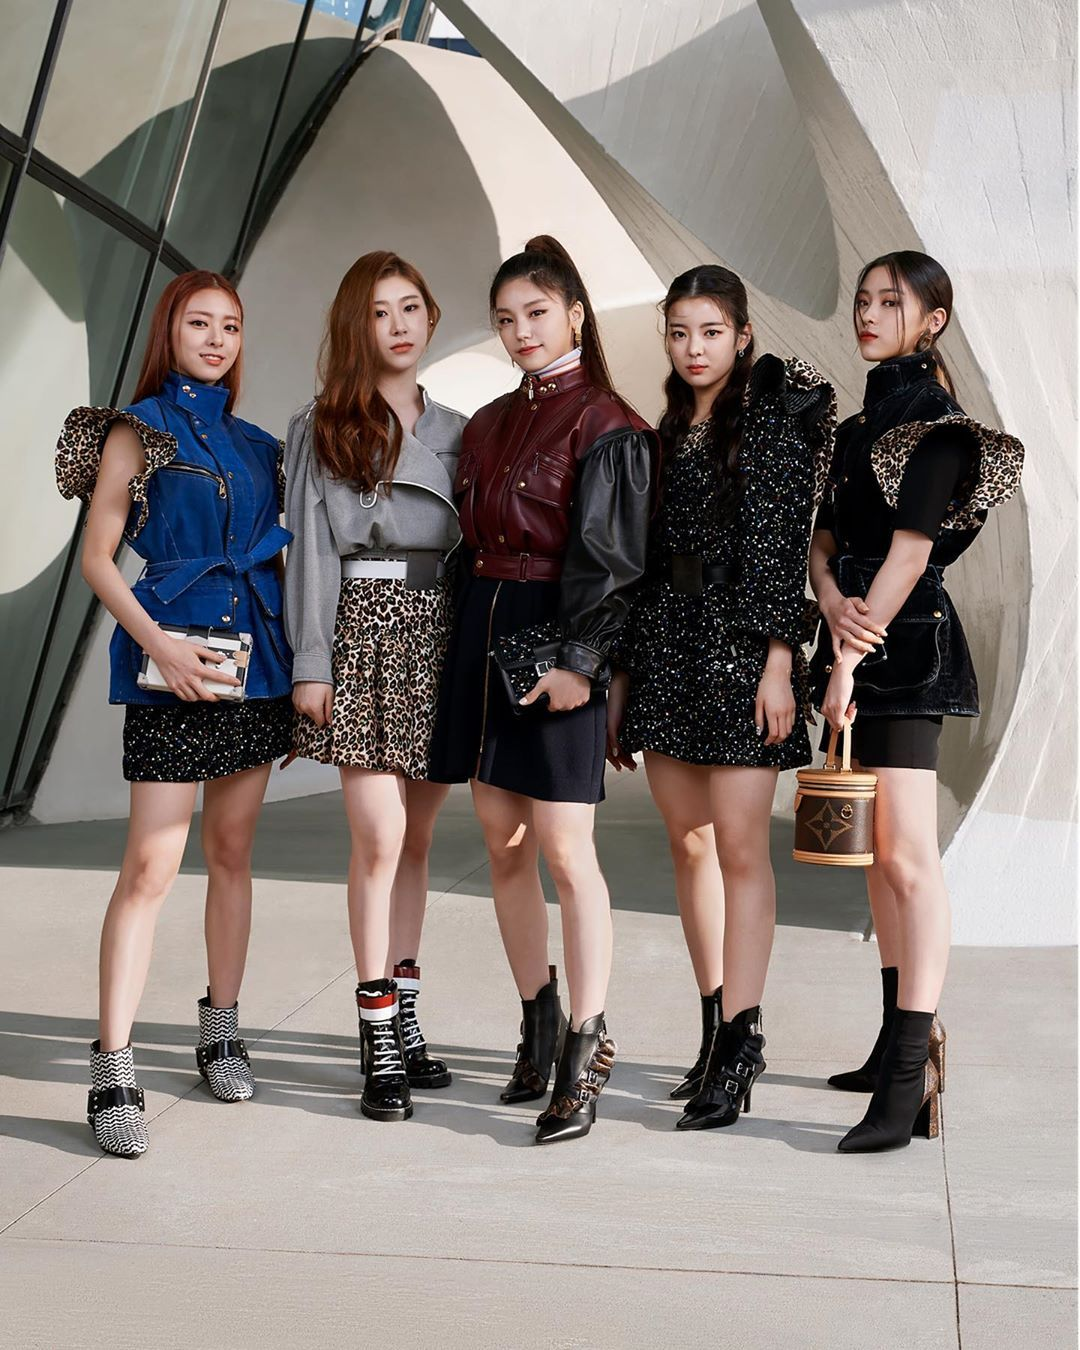 Kpop Fashion 2020.Louis Vuitton Official On Instagram Itzy